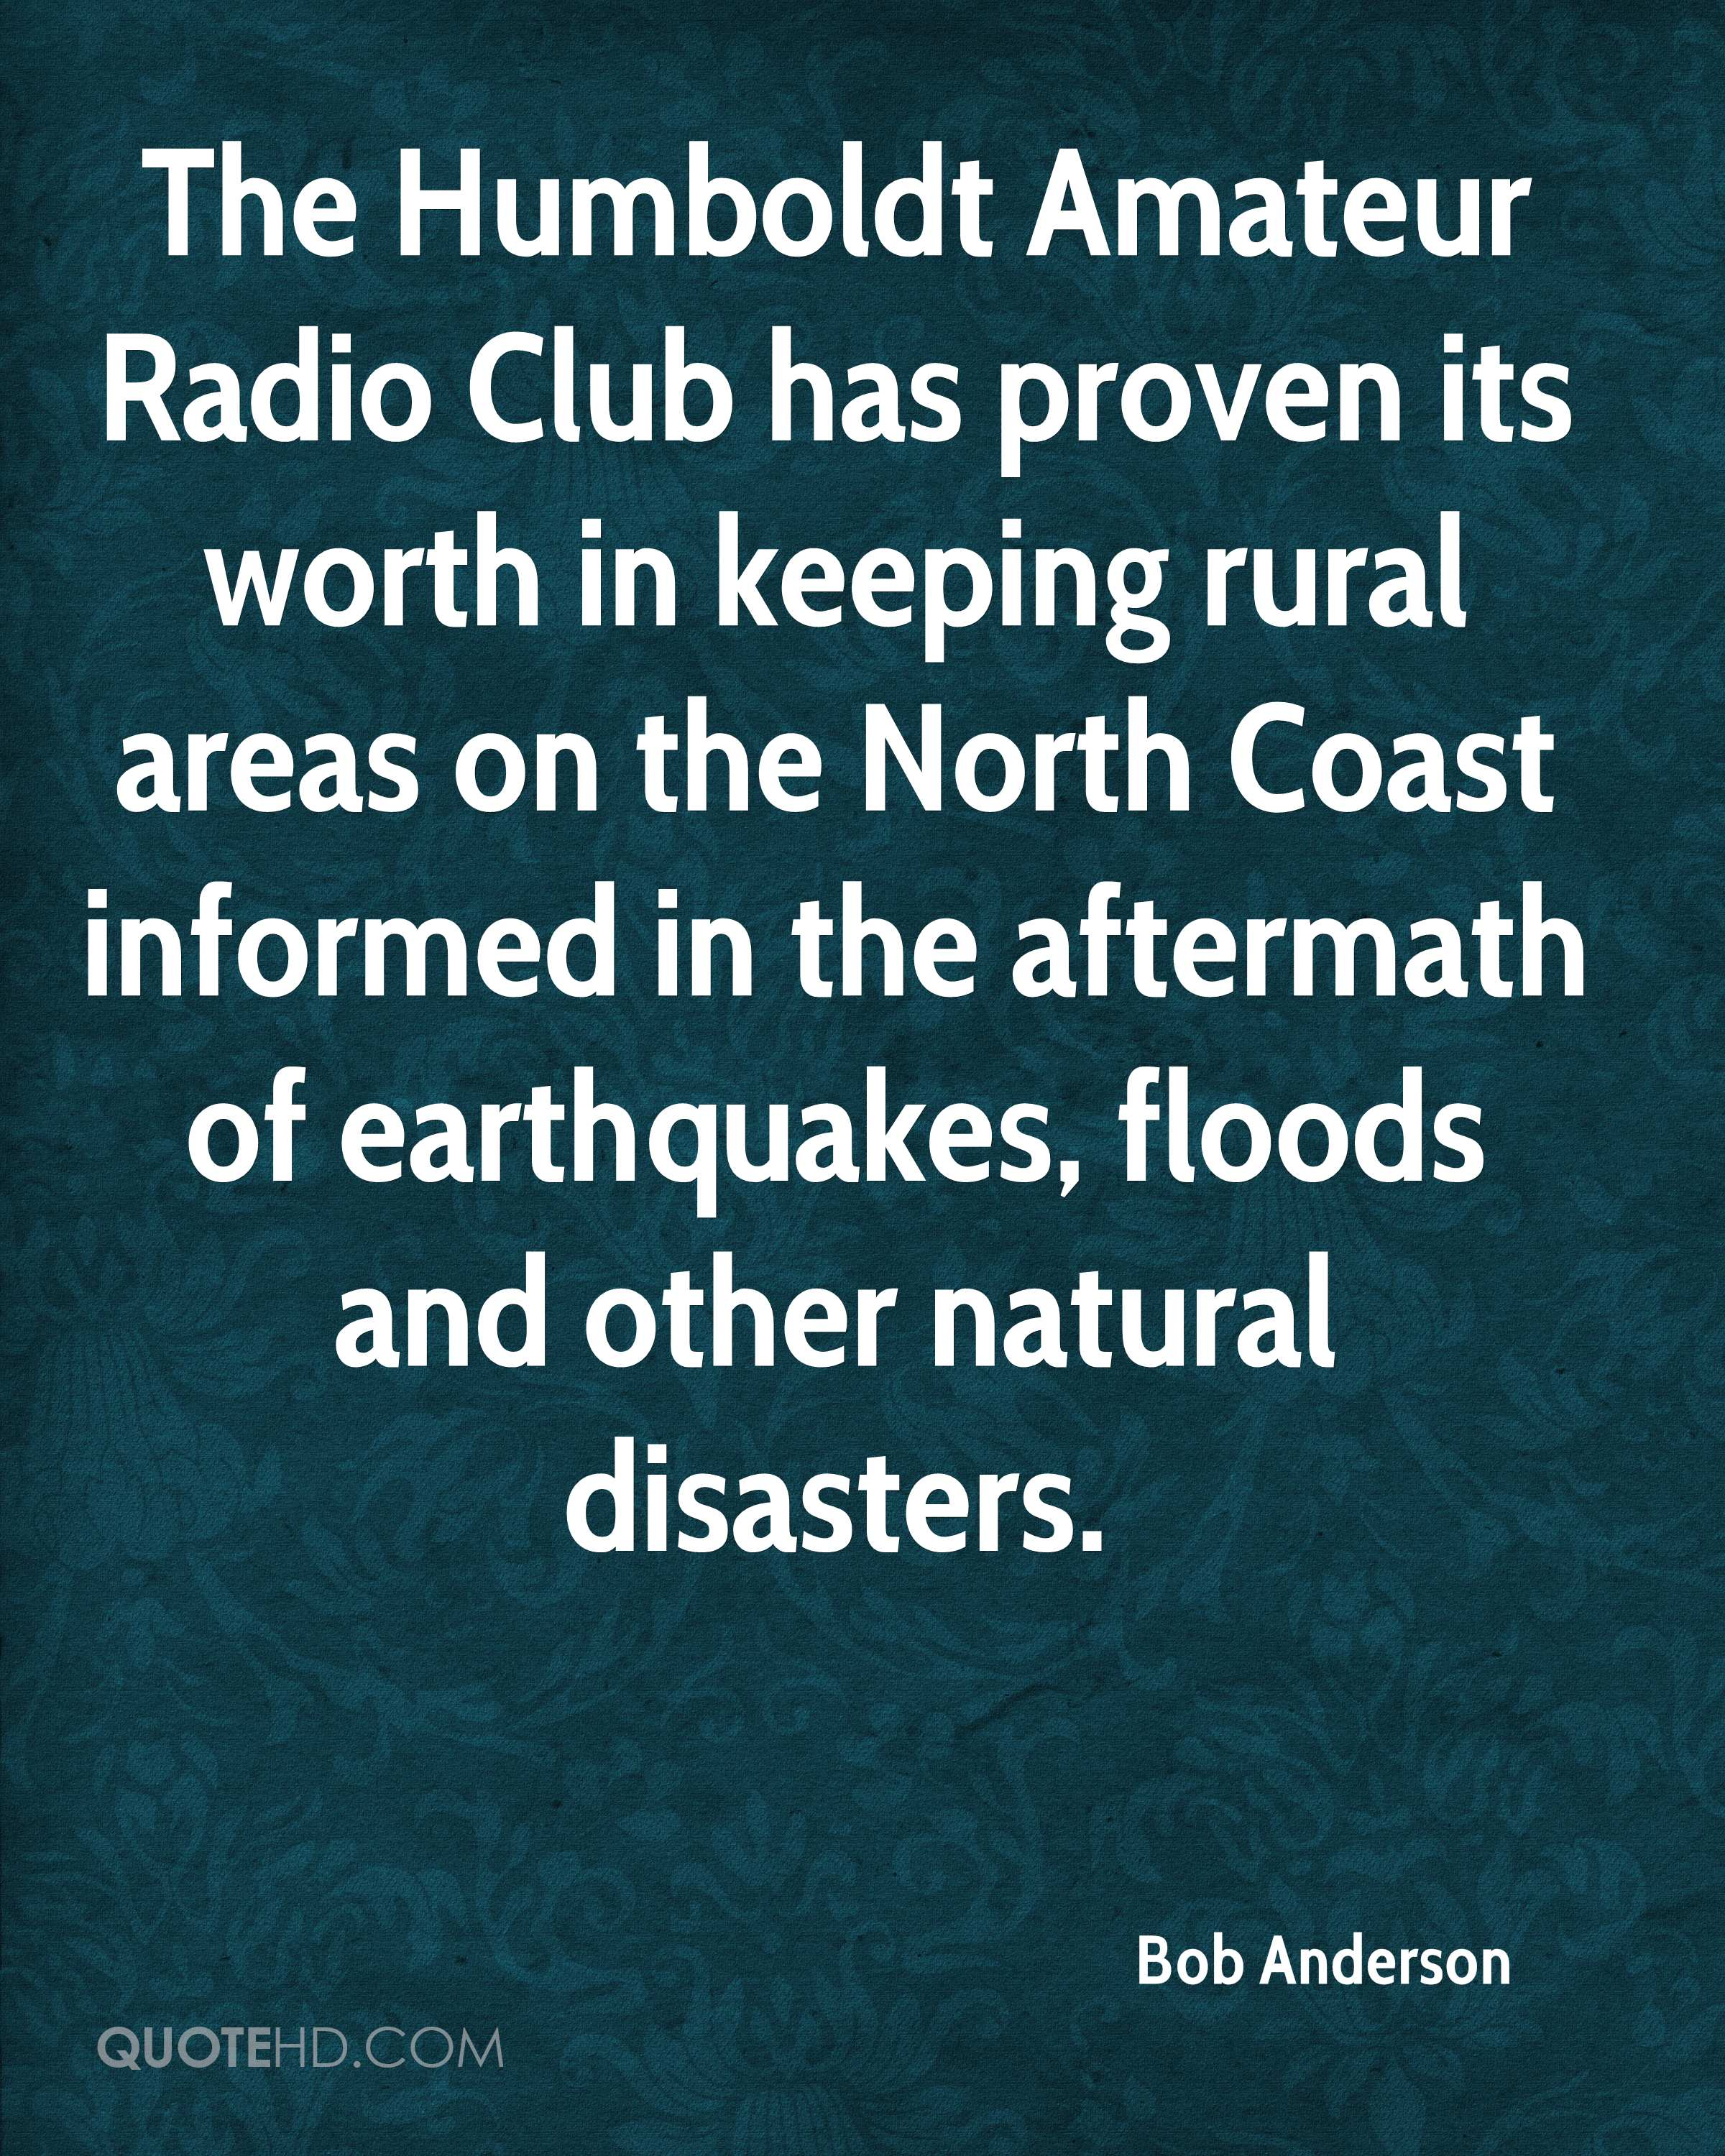 The Humboldt Amateur Radio Club has proven its worth in keeping rural areas on the North Coast informed in the aftermath of earthquakes, floods and other natural disasters.